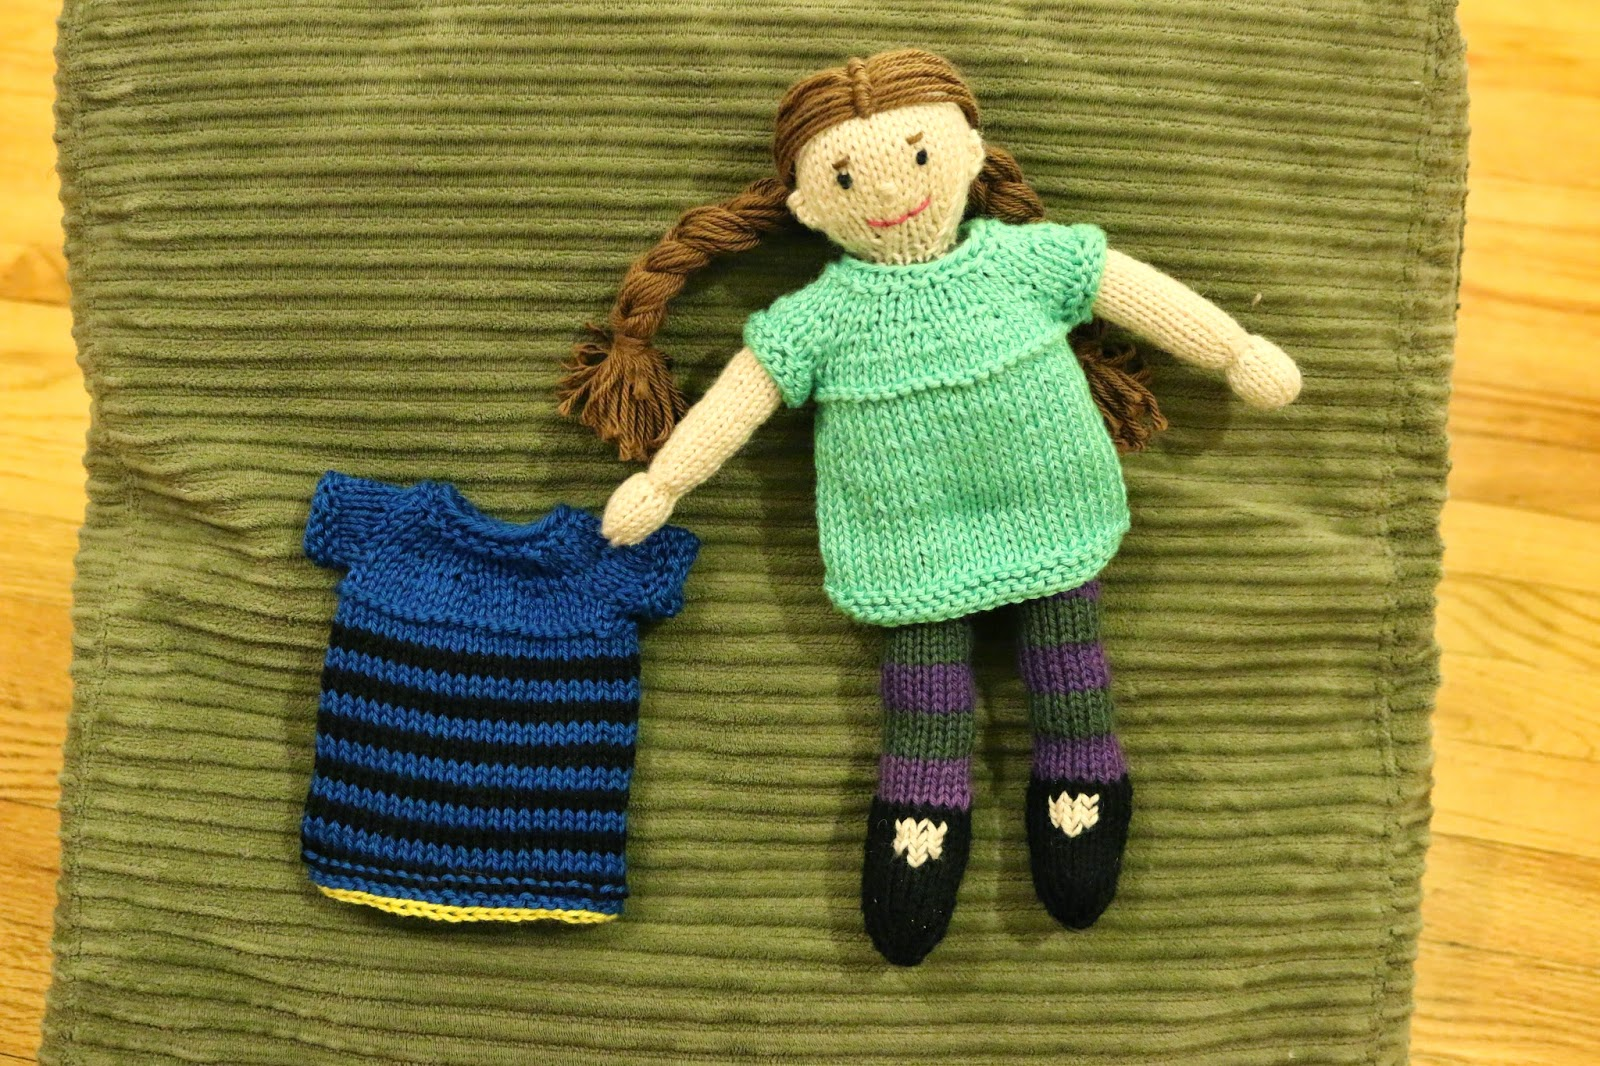 Chemknits july 2015 looking at the striping patterns on the sample dolls i could see that the striped dress is a little longer than the non striped version a feature that i fandeluxe Gallery